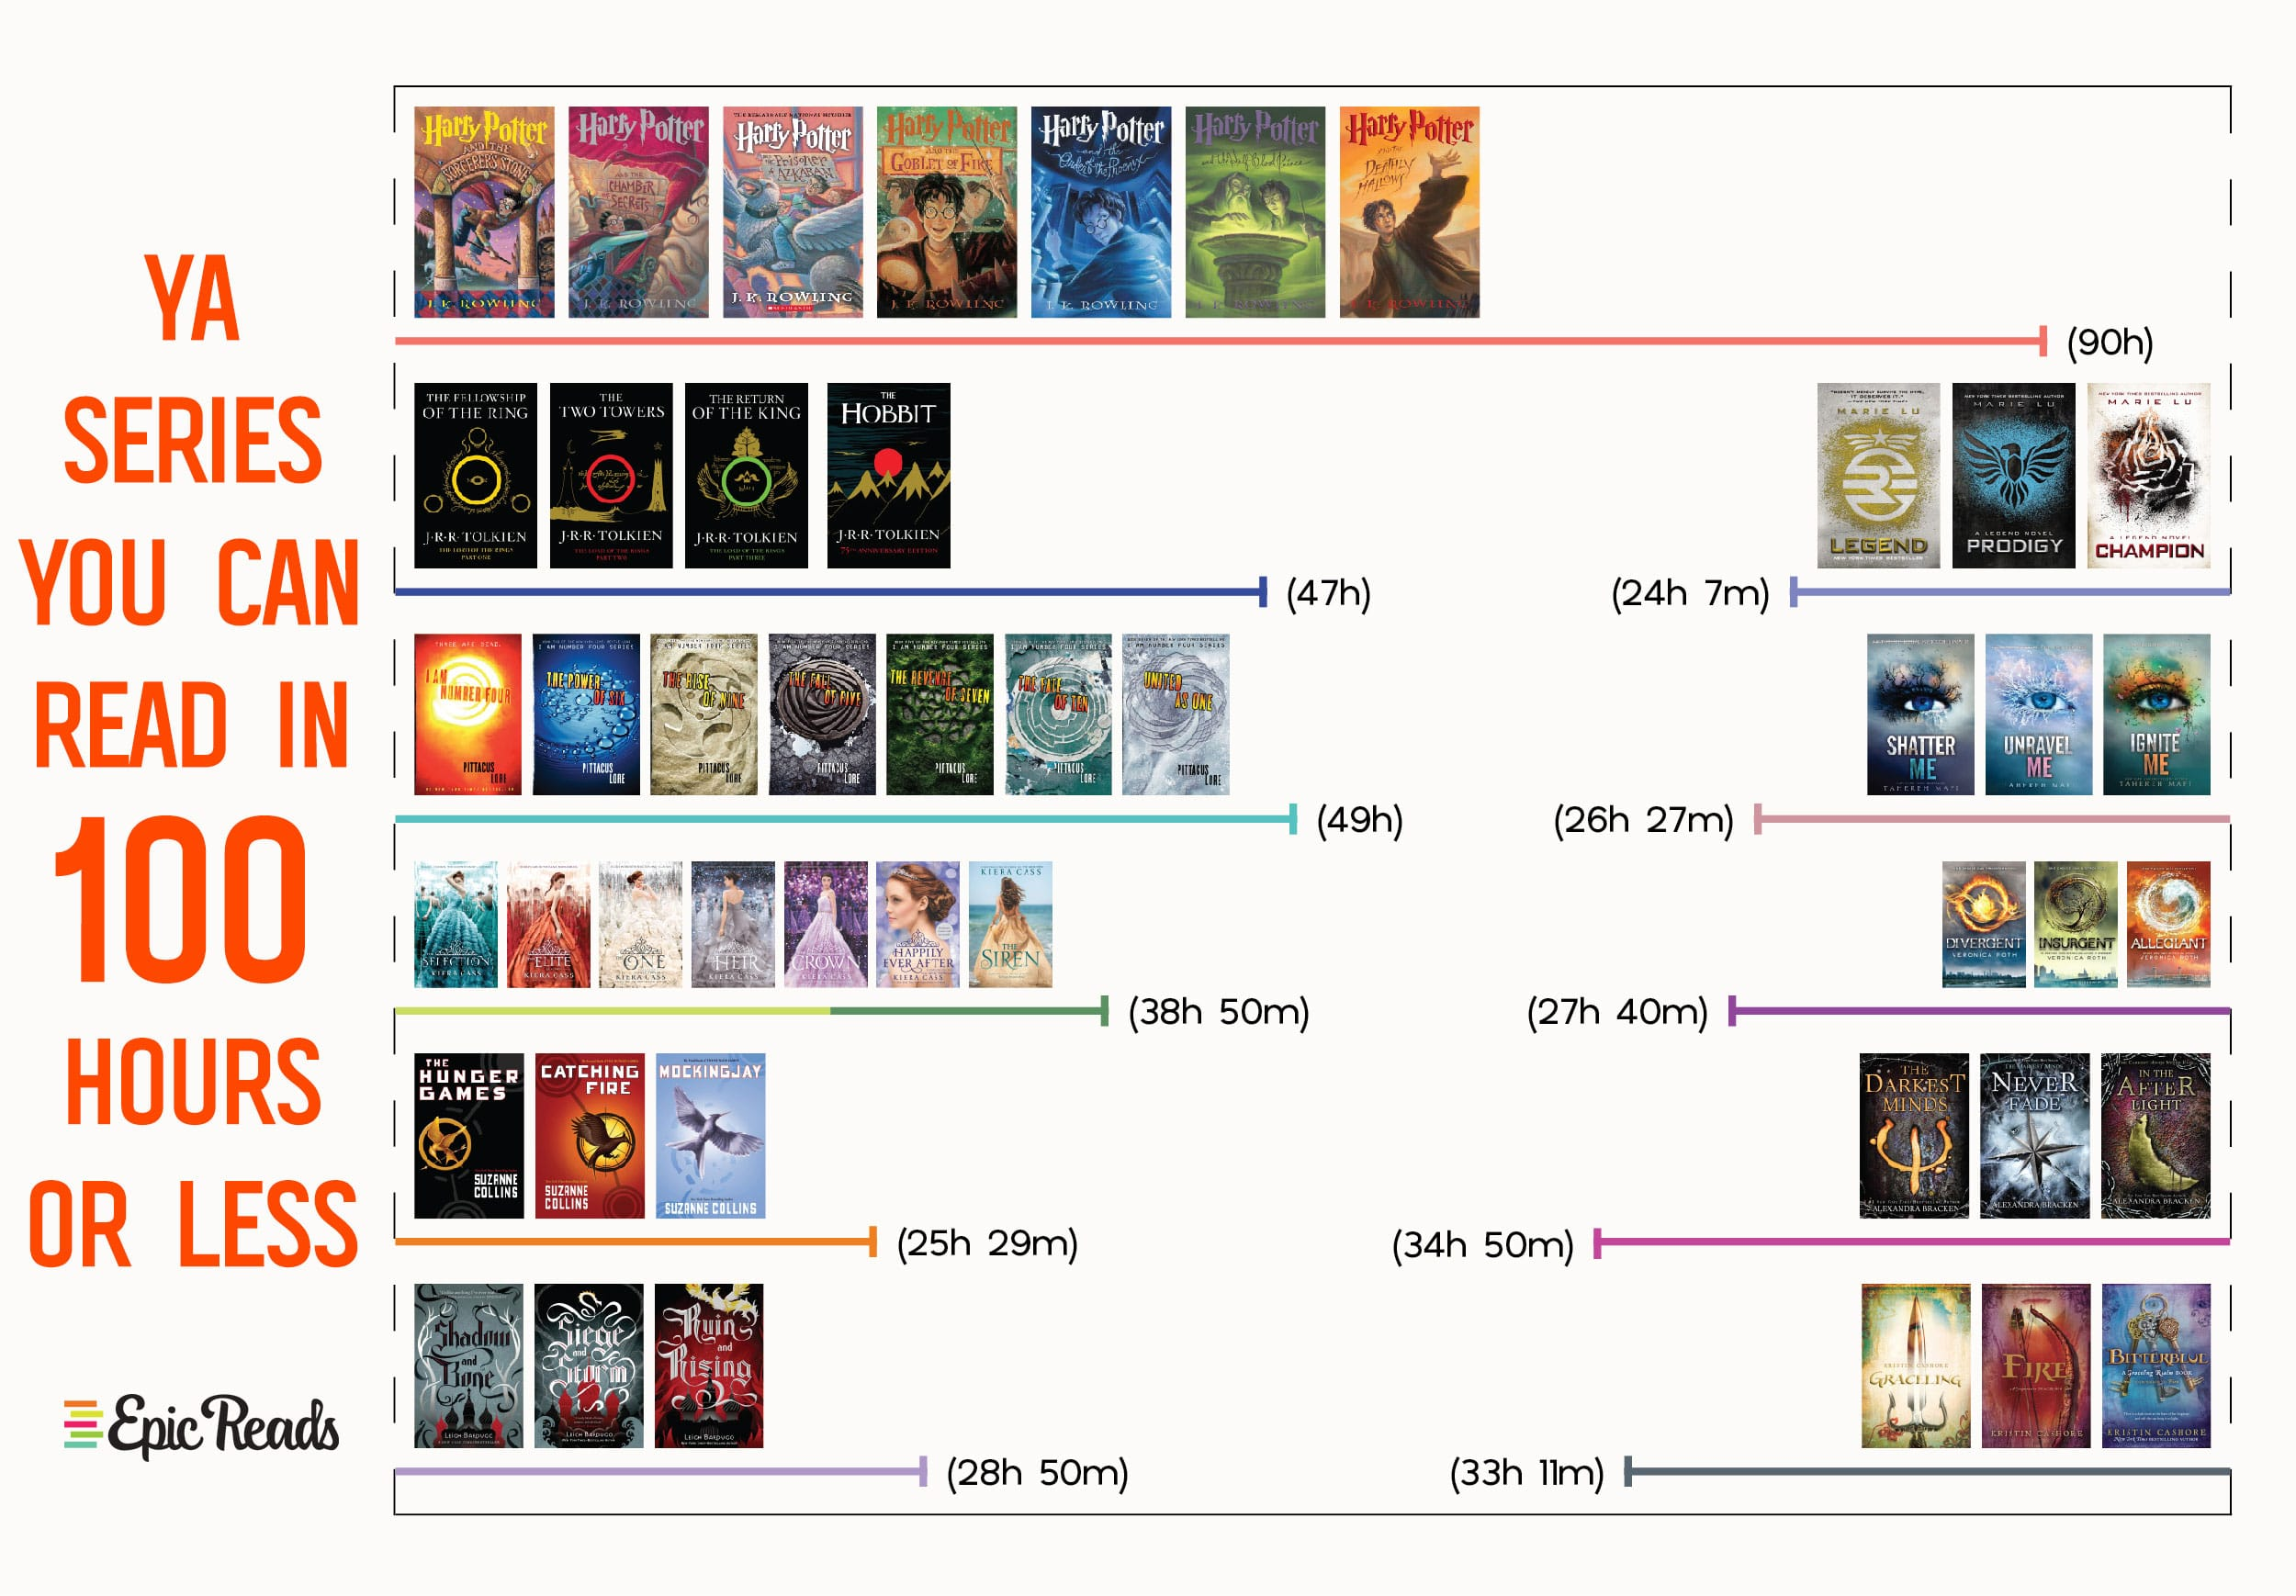 YA Series You Can Read in 100 Hours or Less - infographic by @EpicReads